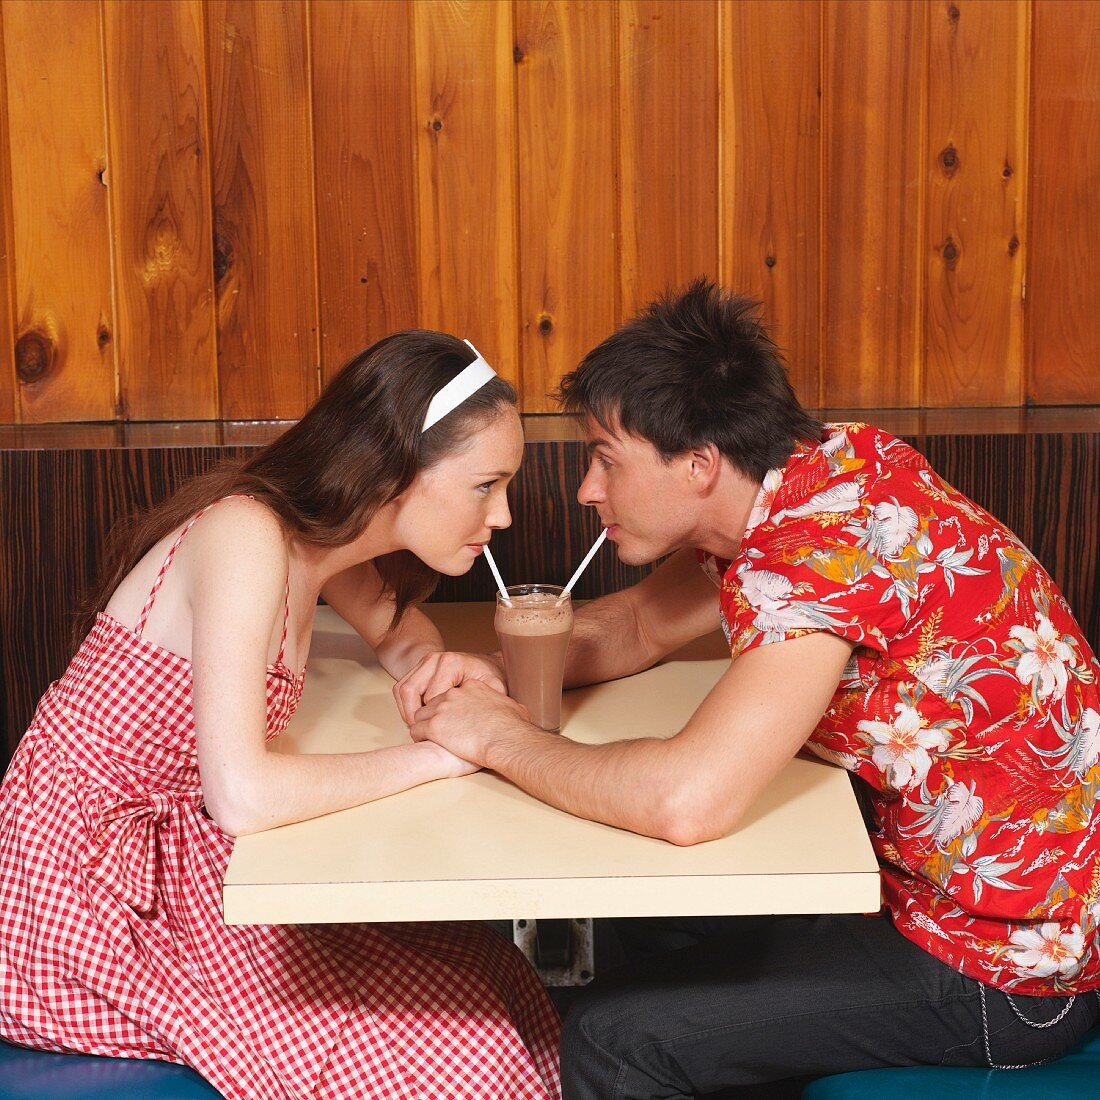 A couple drinking a milkshake in a diner